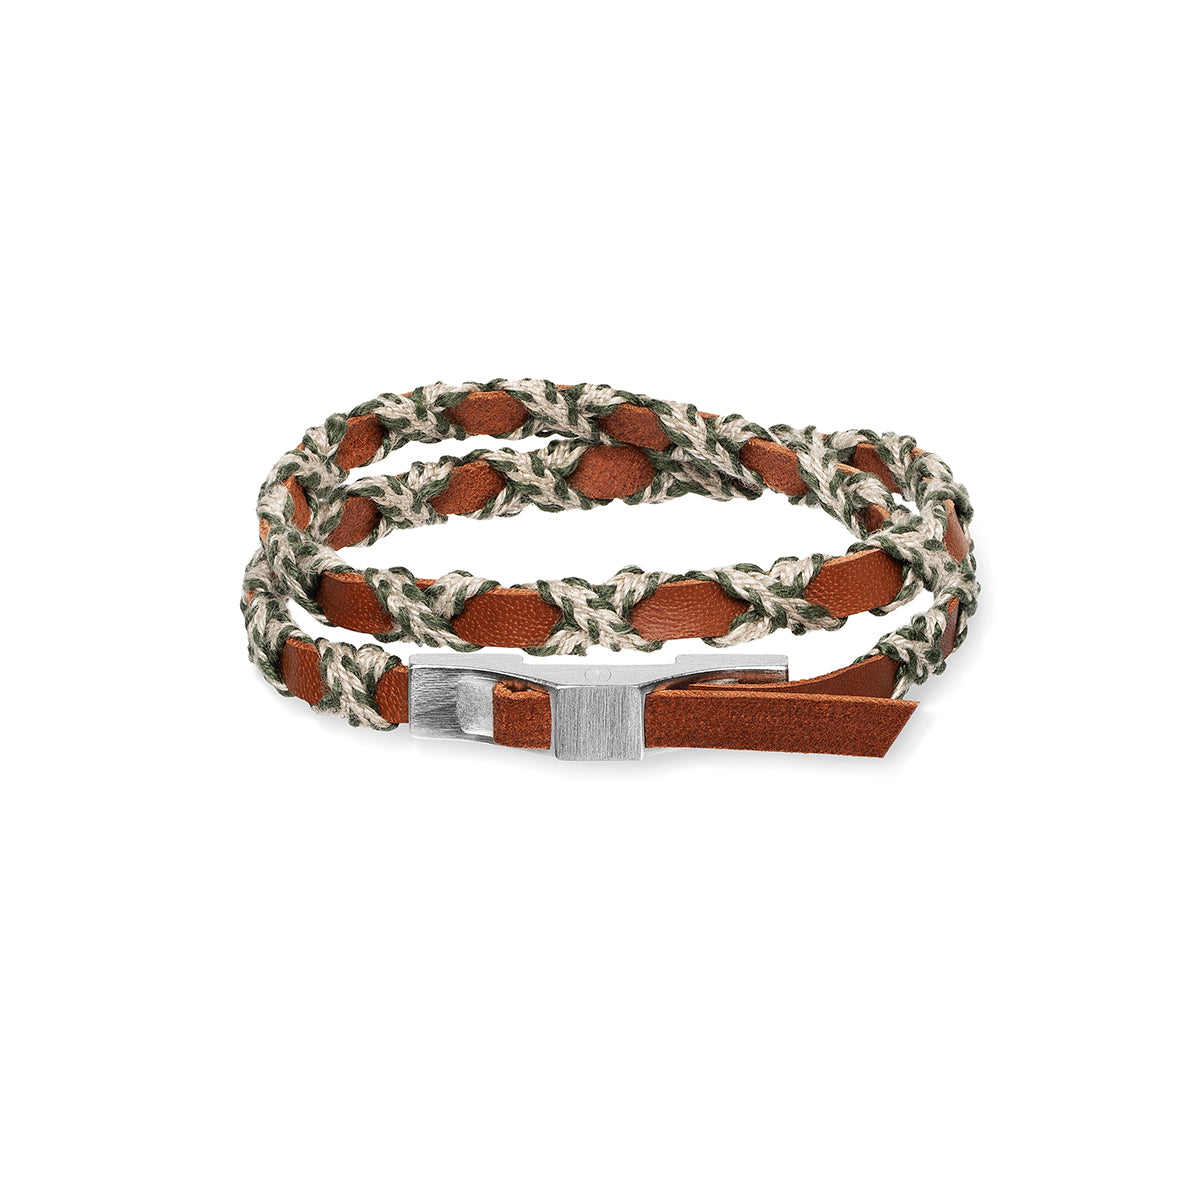 Bracelet double tour cuir tressé marron